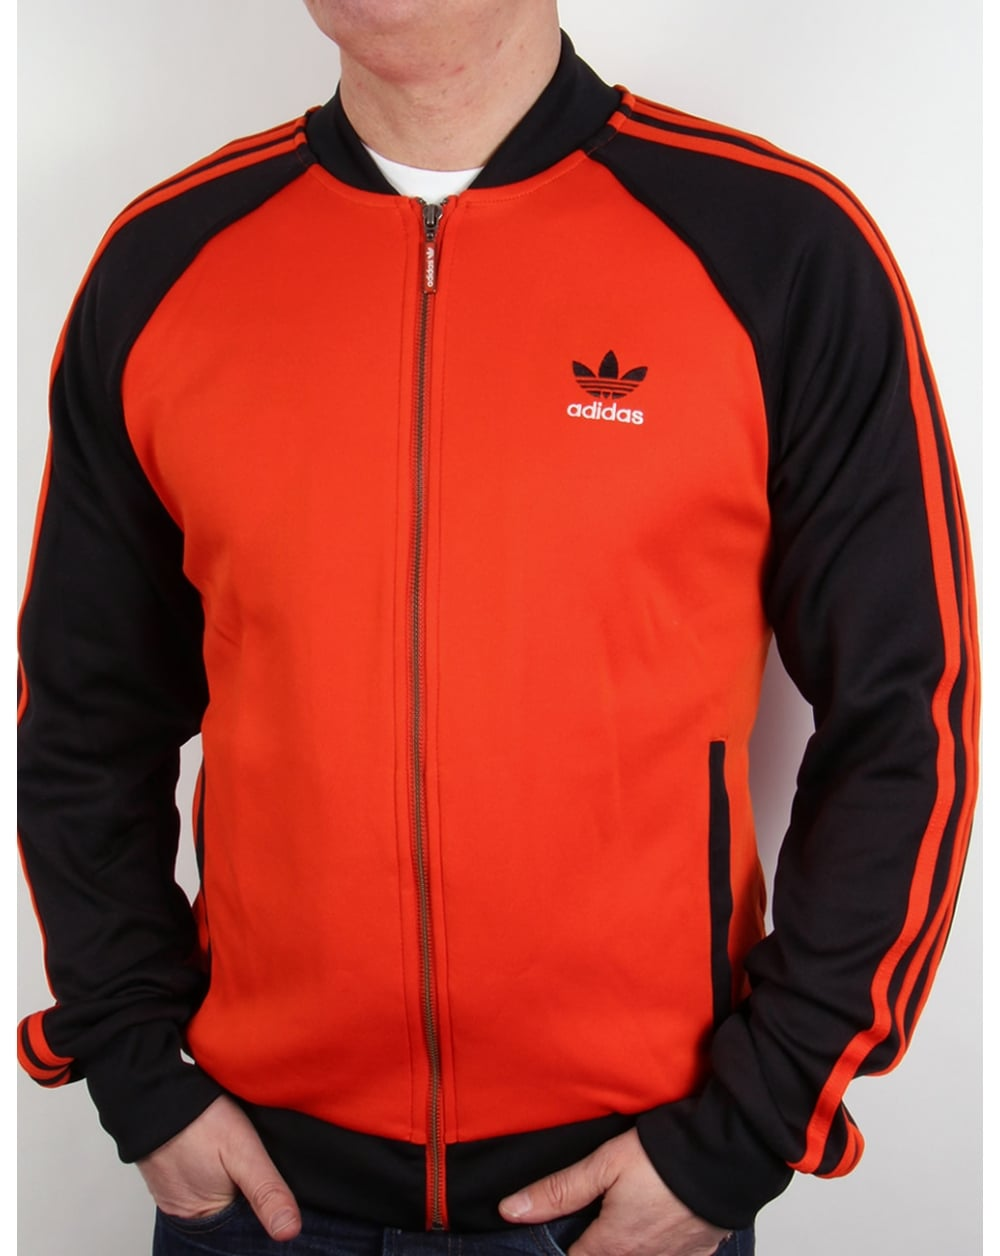 adidas originals superstar track top orange black jacket. Black Bedroom Furniture Sets. Home Design Ideas